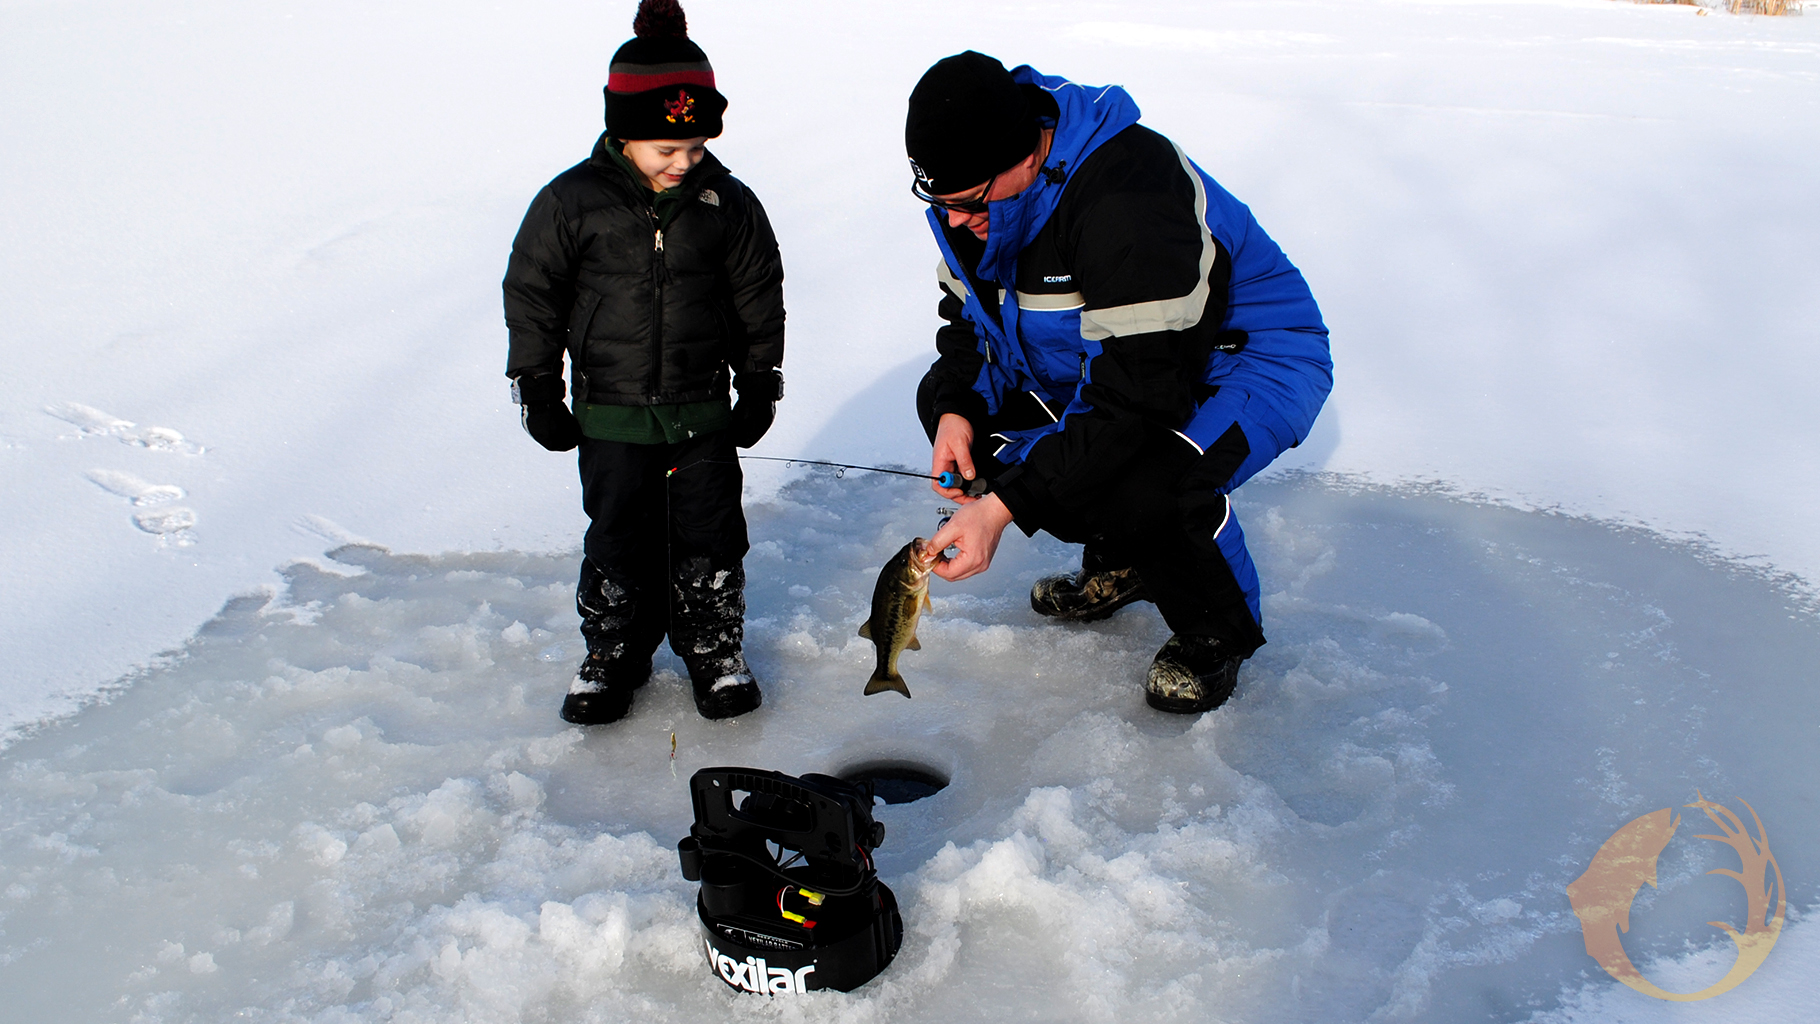 Sonar for Ice-Fishing